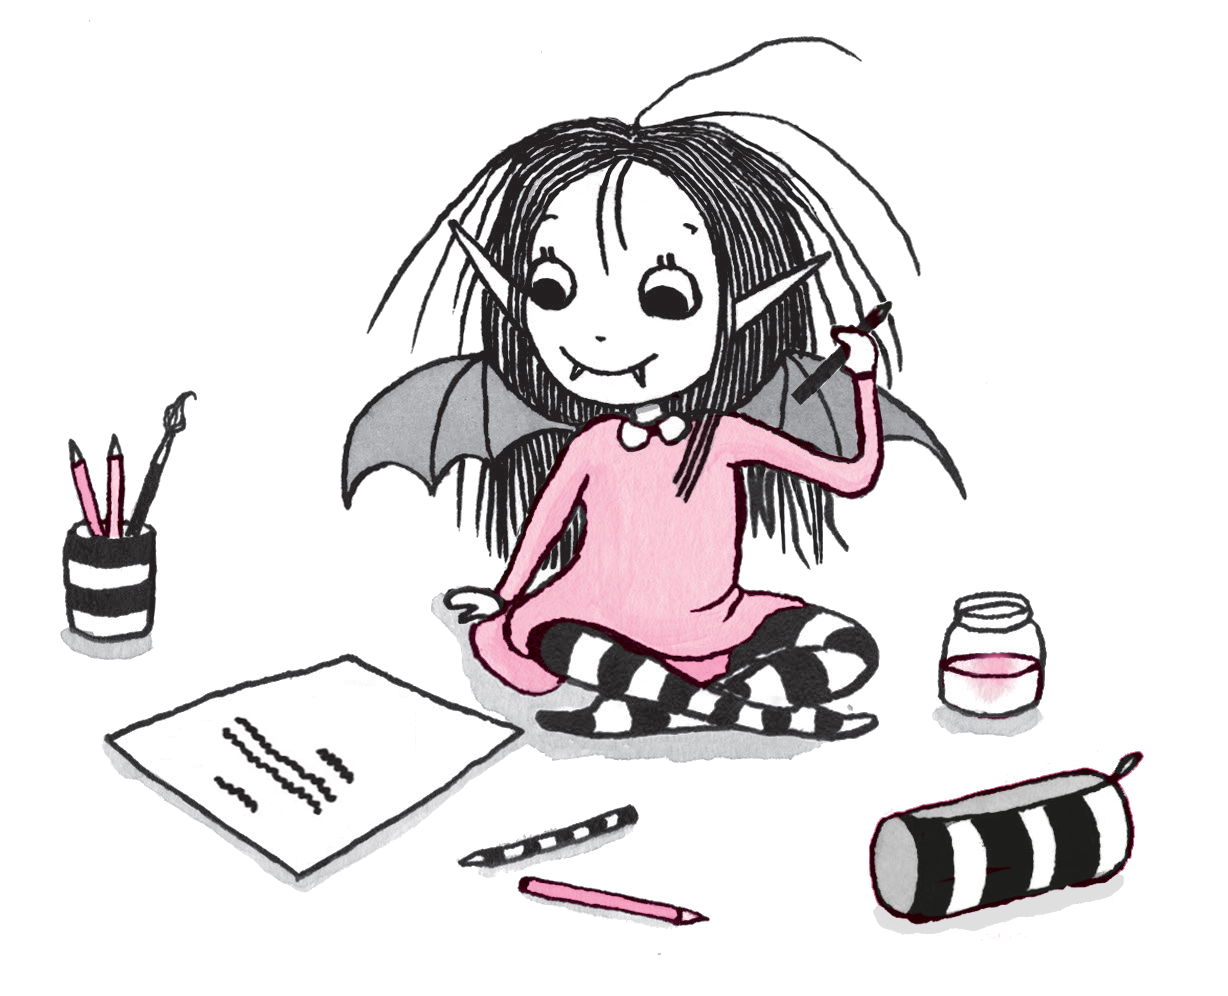 Isadora Moon writing